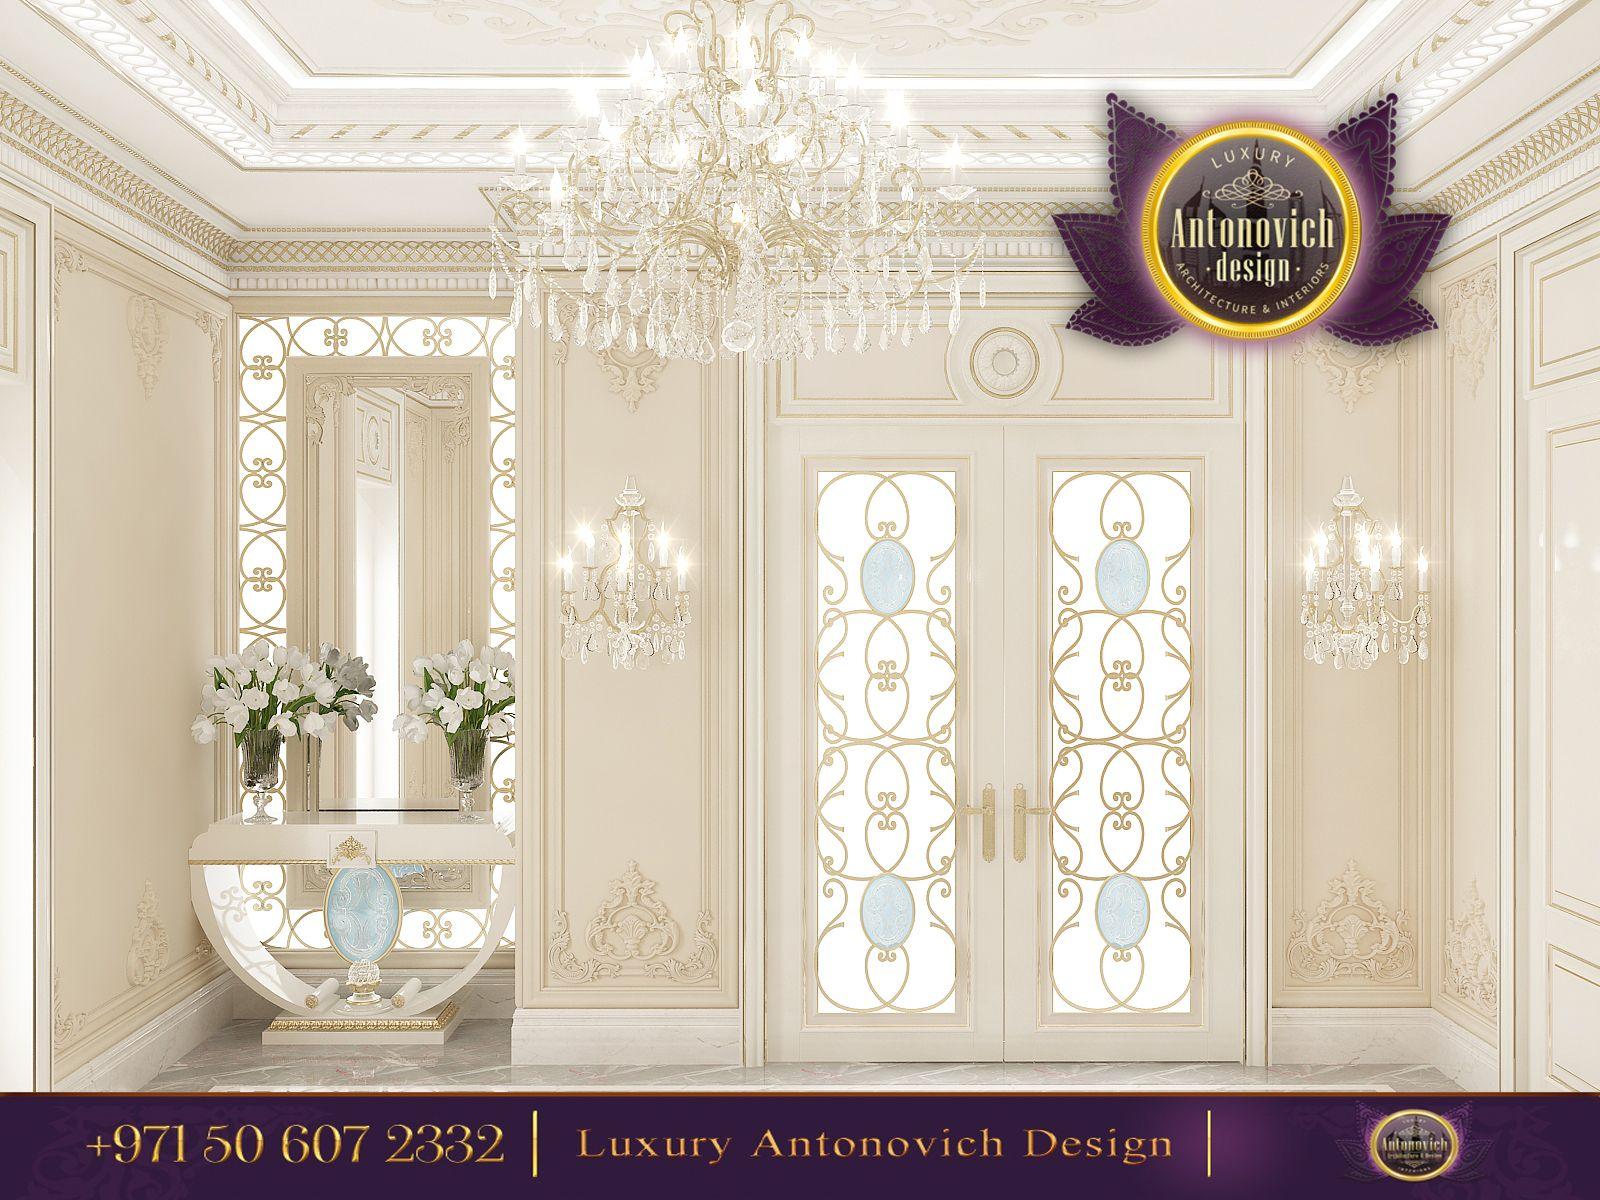 Beautiful dressing room design in dubai by luxury antonovich design - Royal White Glam In An Open Concept By Luxury Antonovich Design Would You Love To